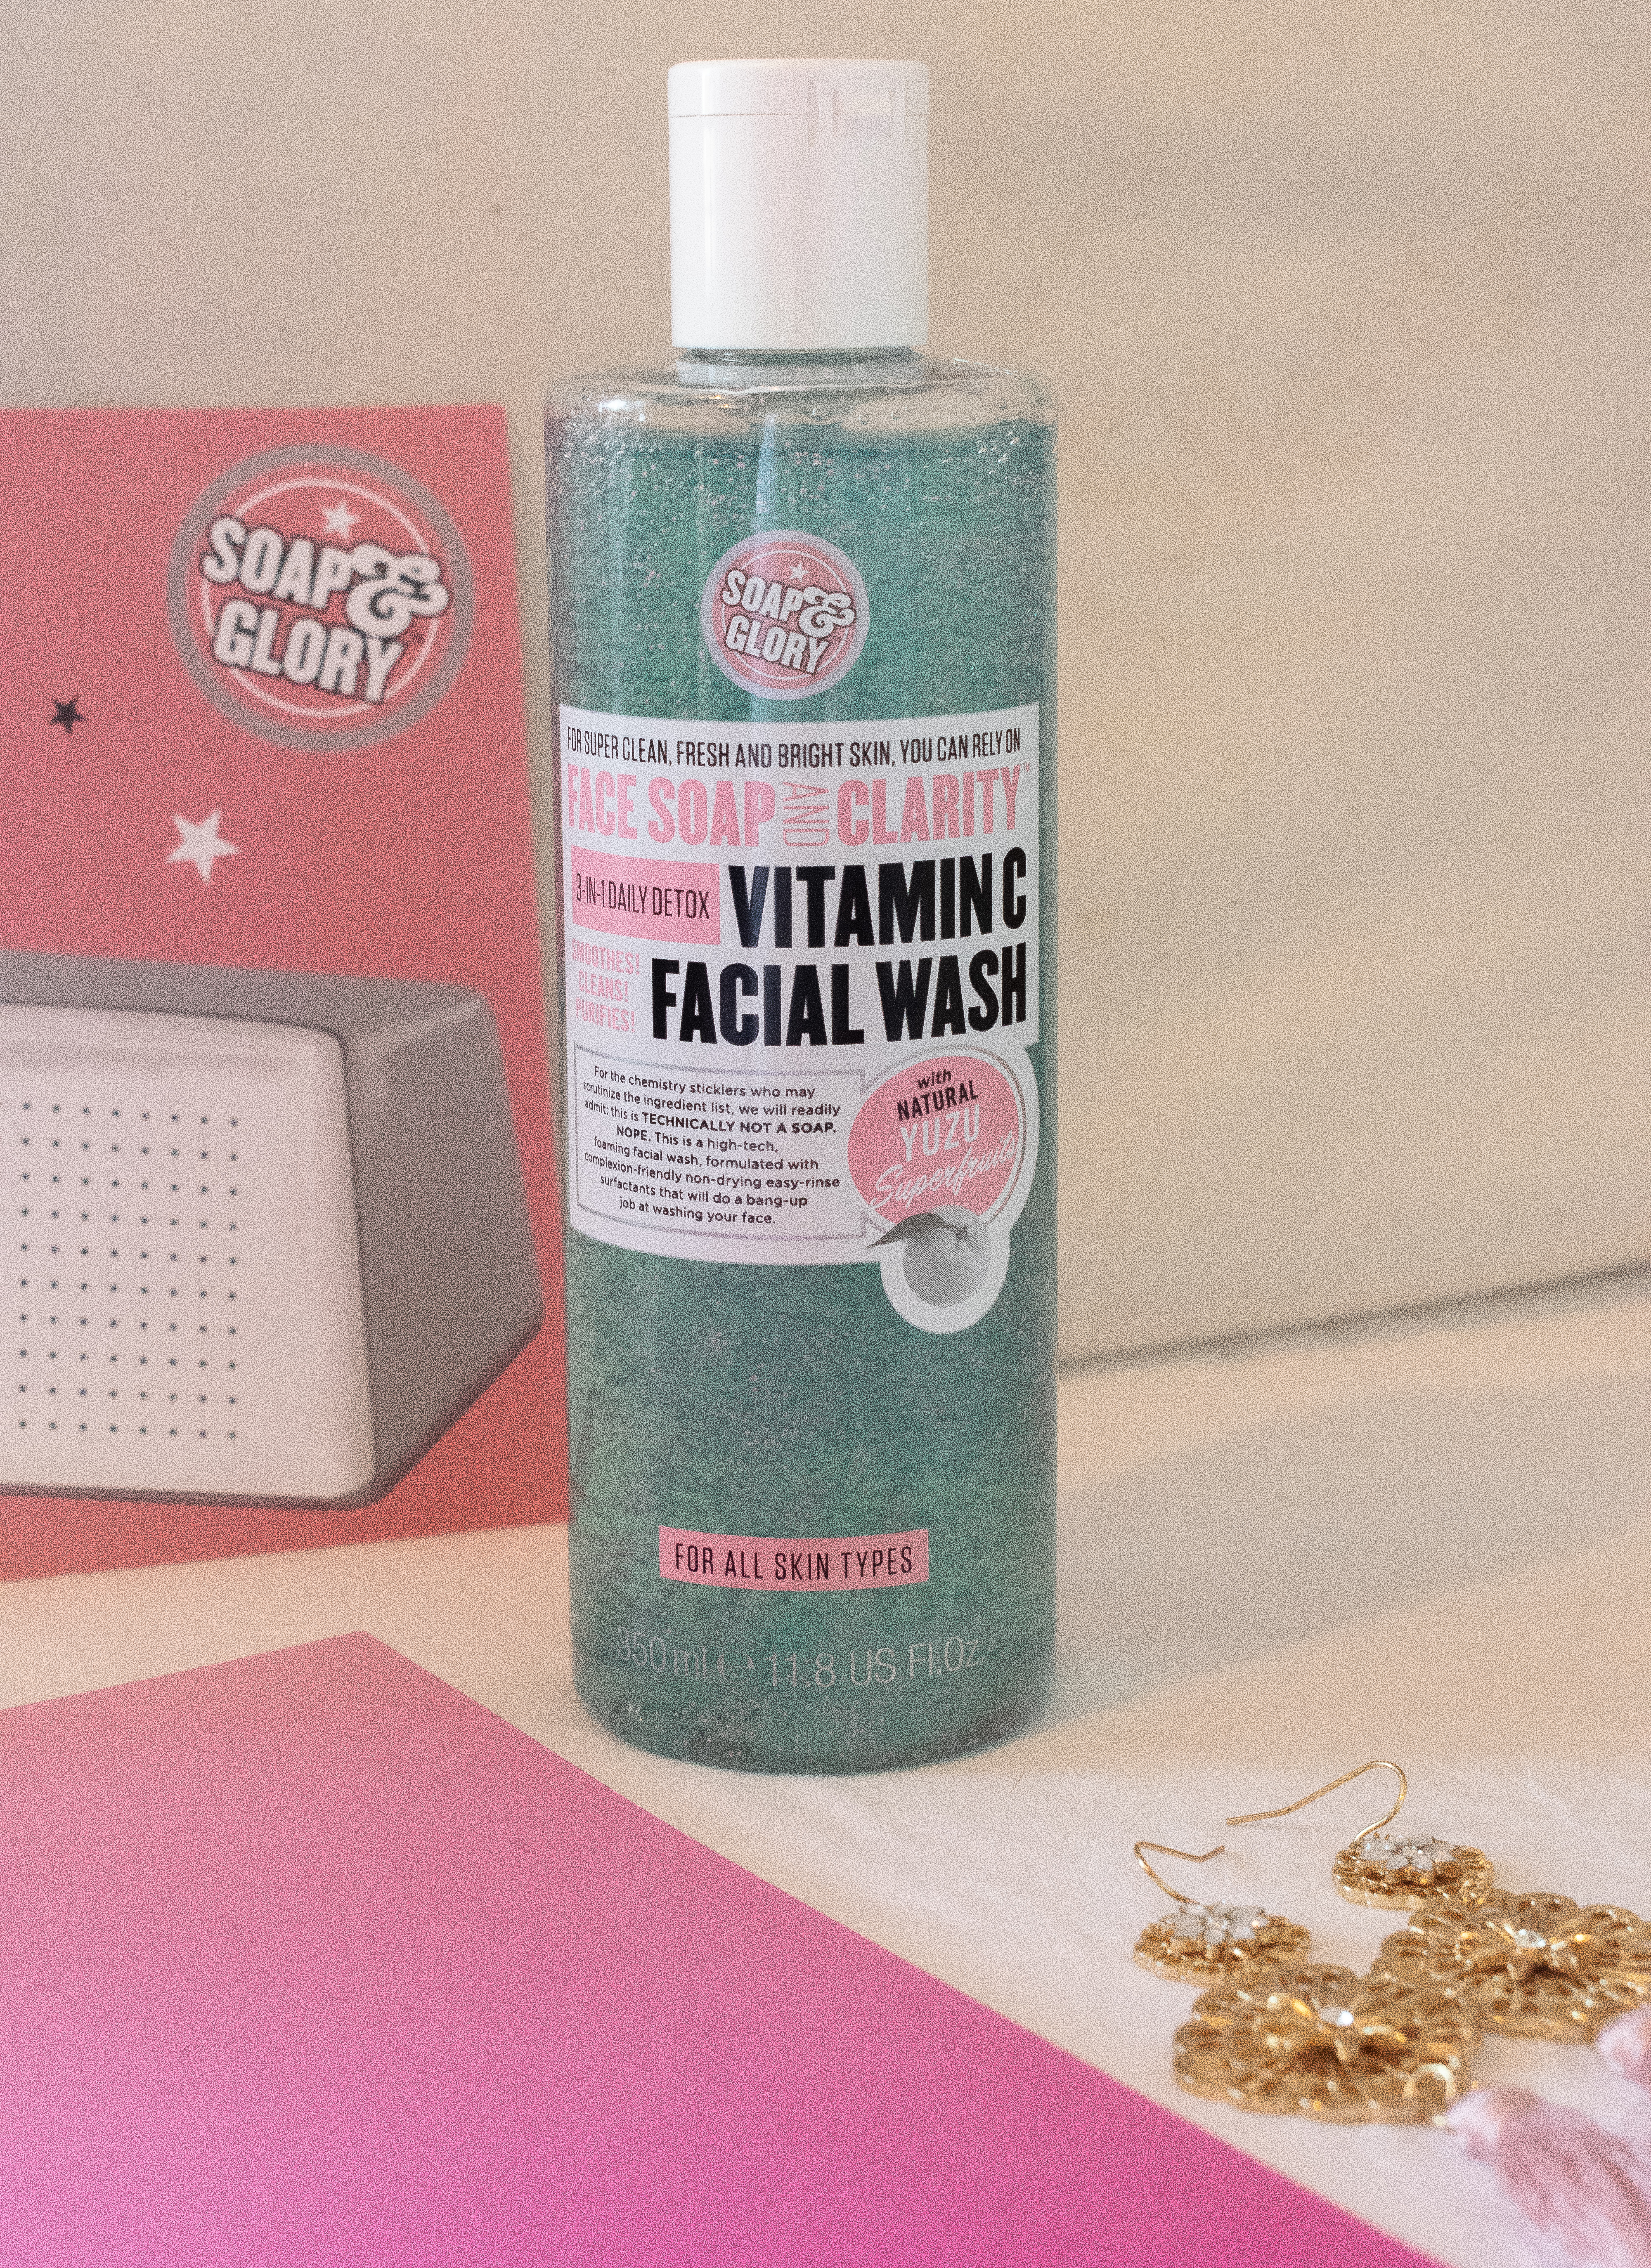 image of soap and glory vitamin c facial wash